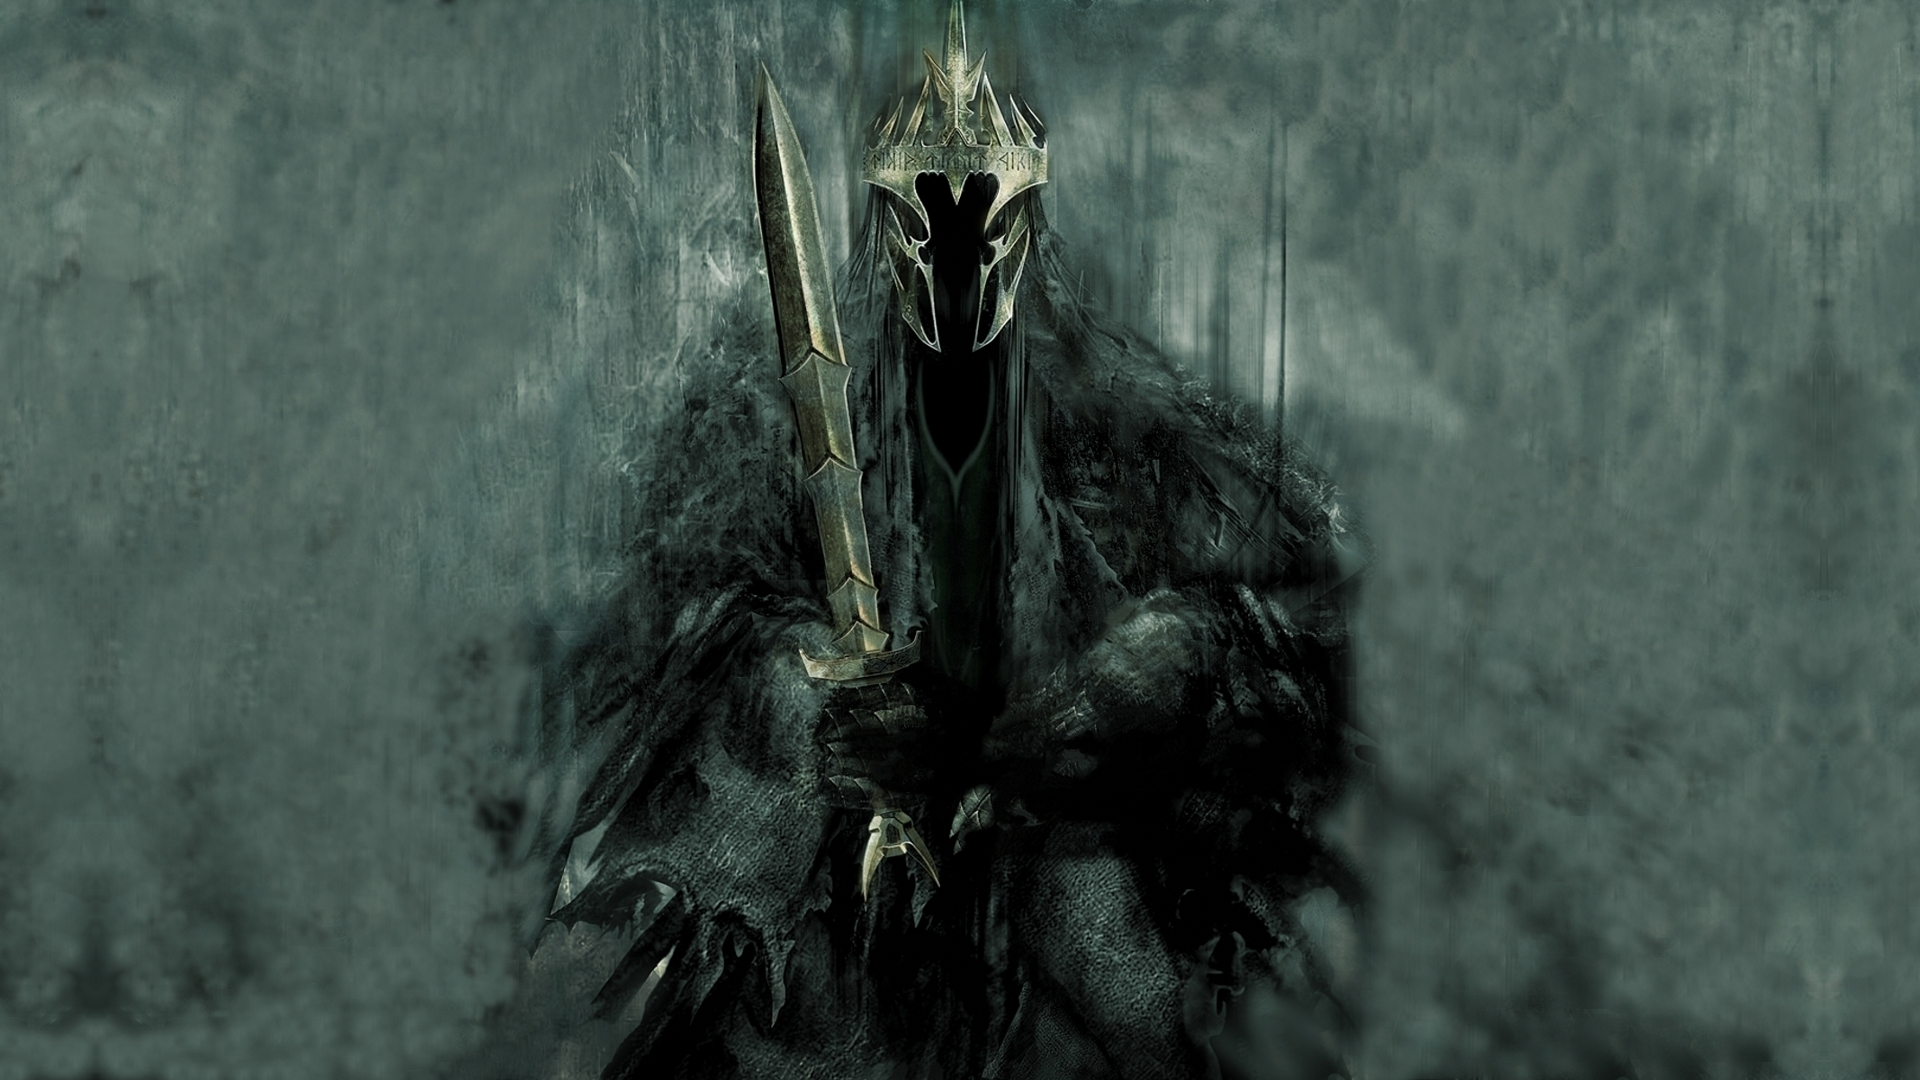 lord of the rings images the witch king full hd hd